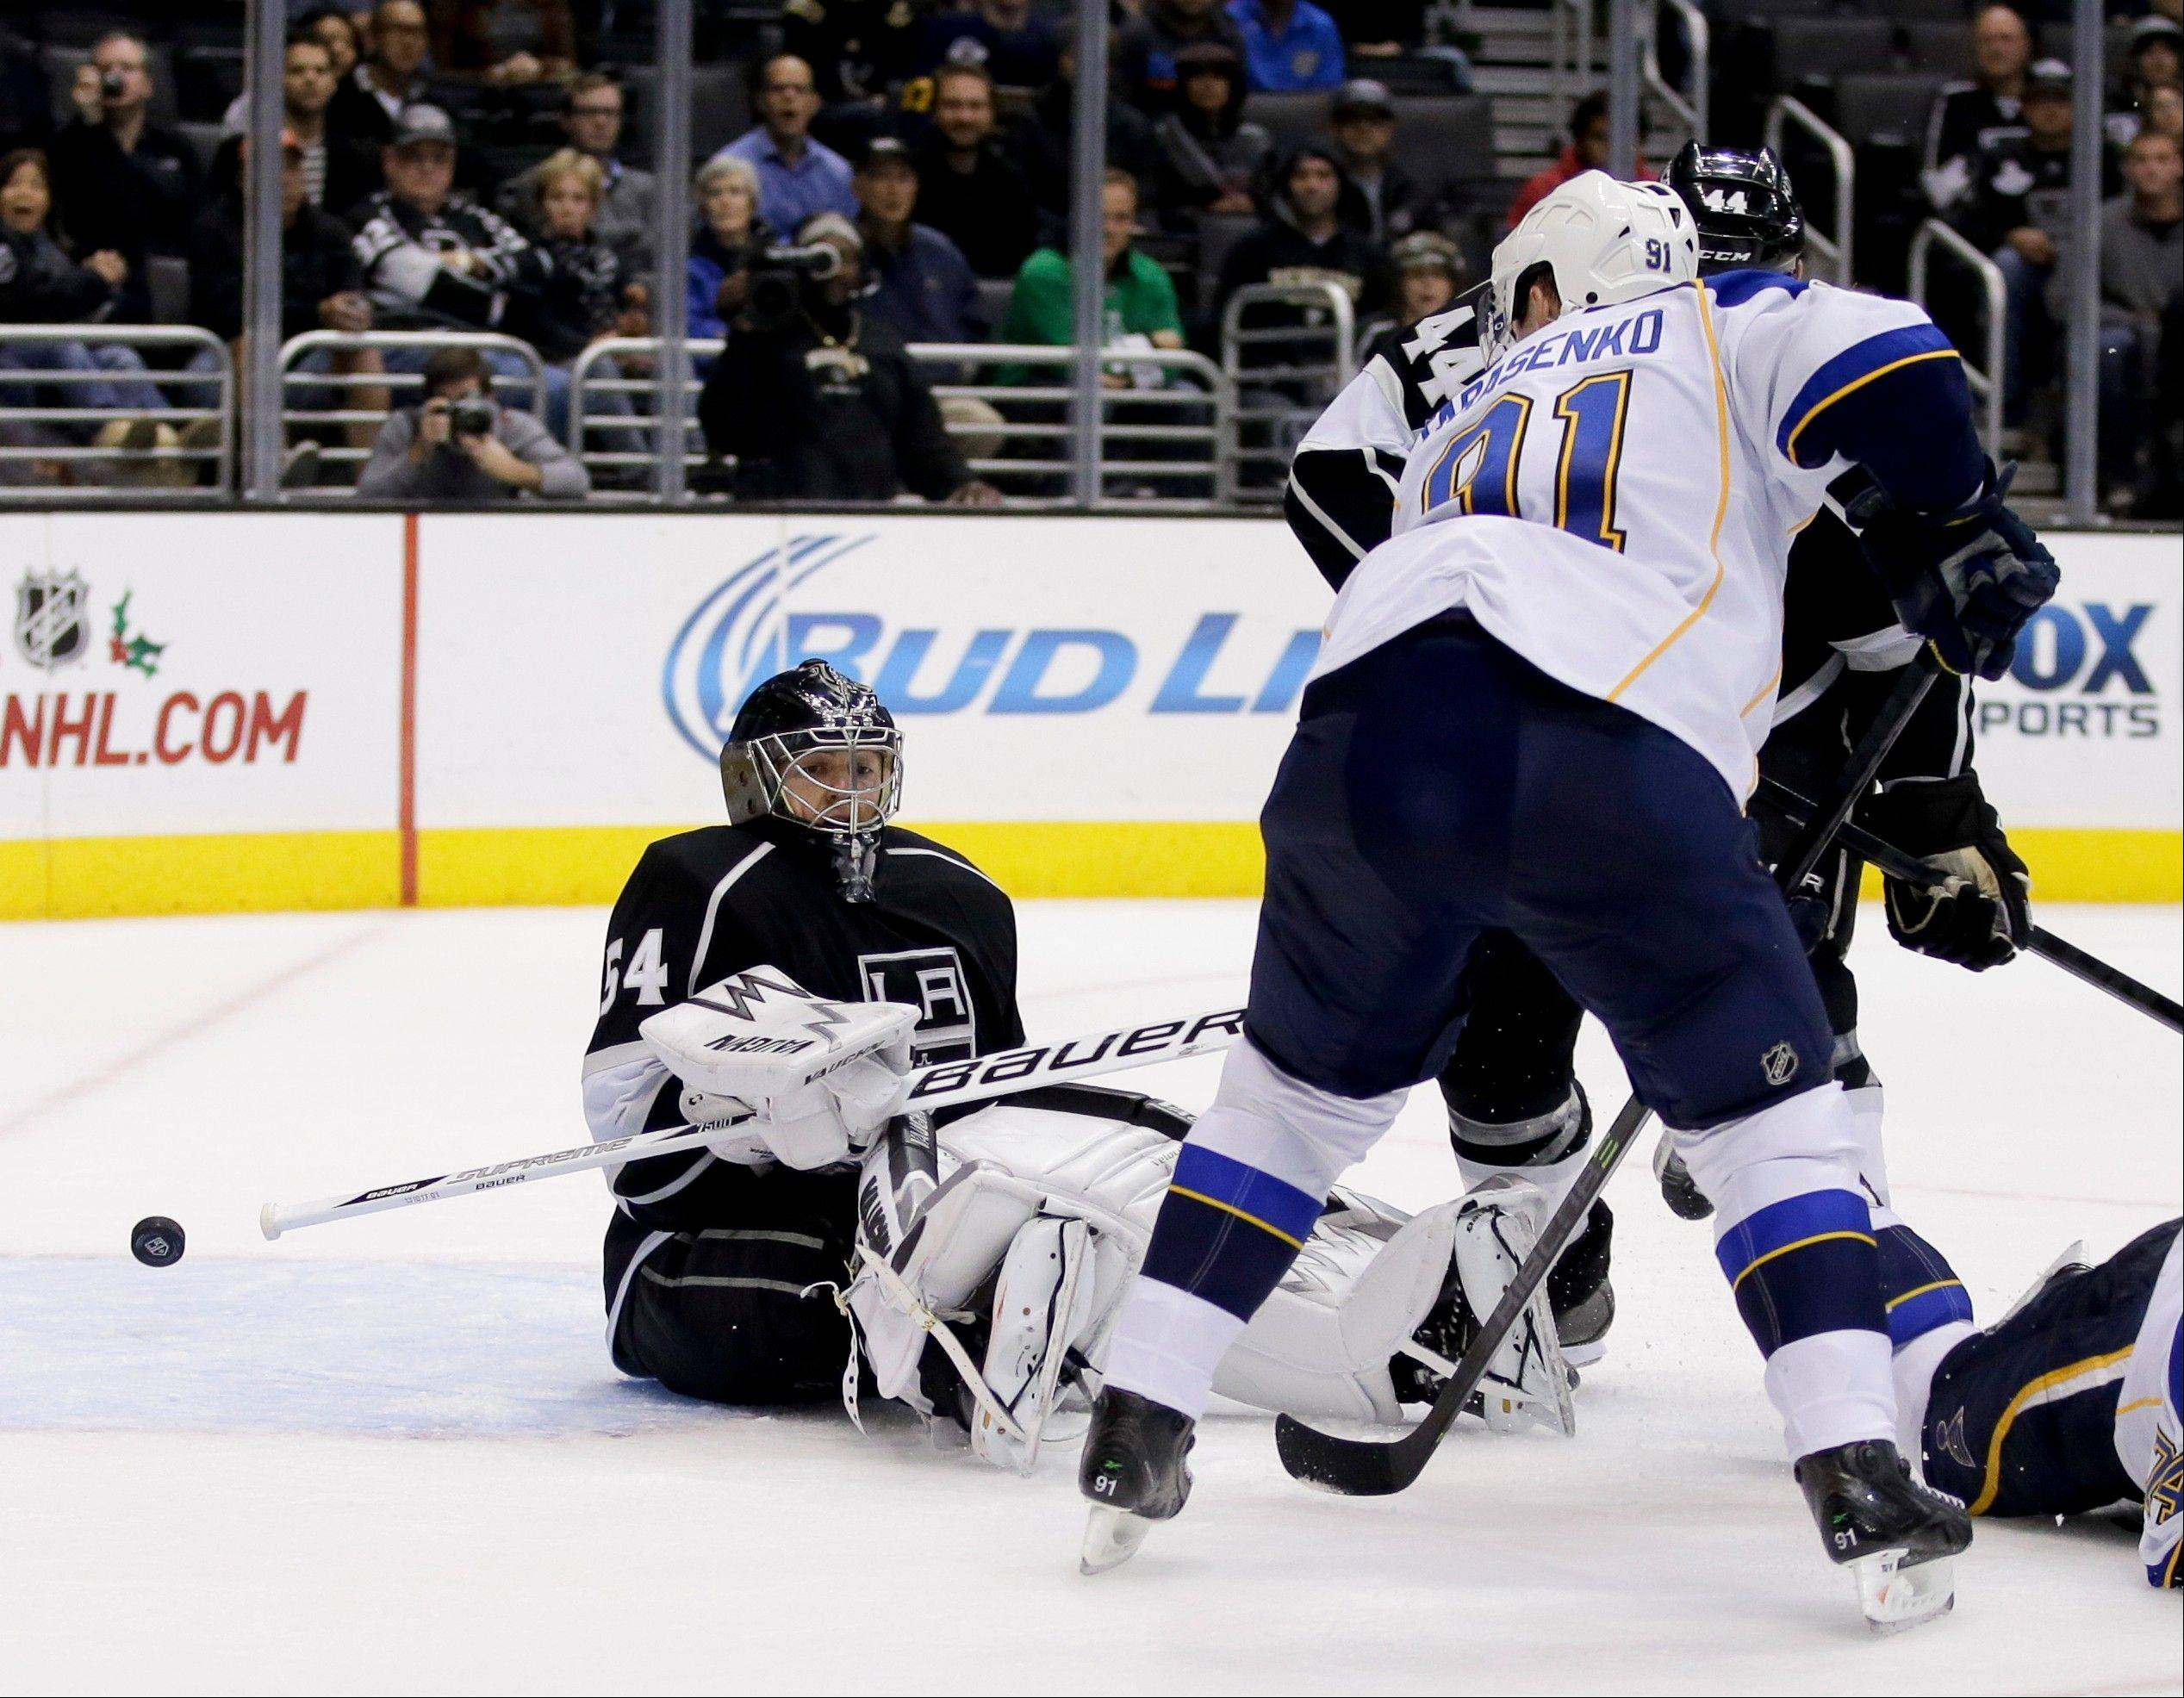 St. Louis Blues right wing Vladimir Tarasenko, left, scores past Los Angeles Kings goalie Ben Scrivens during the third period of an NHL hockey game Monday in Los Angeles.